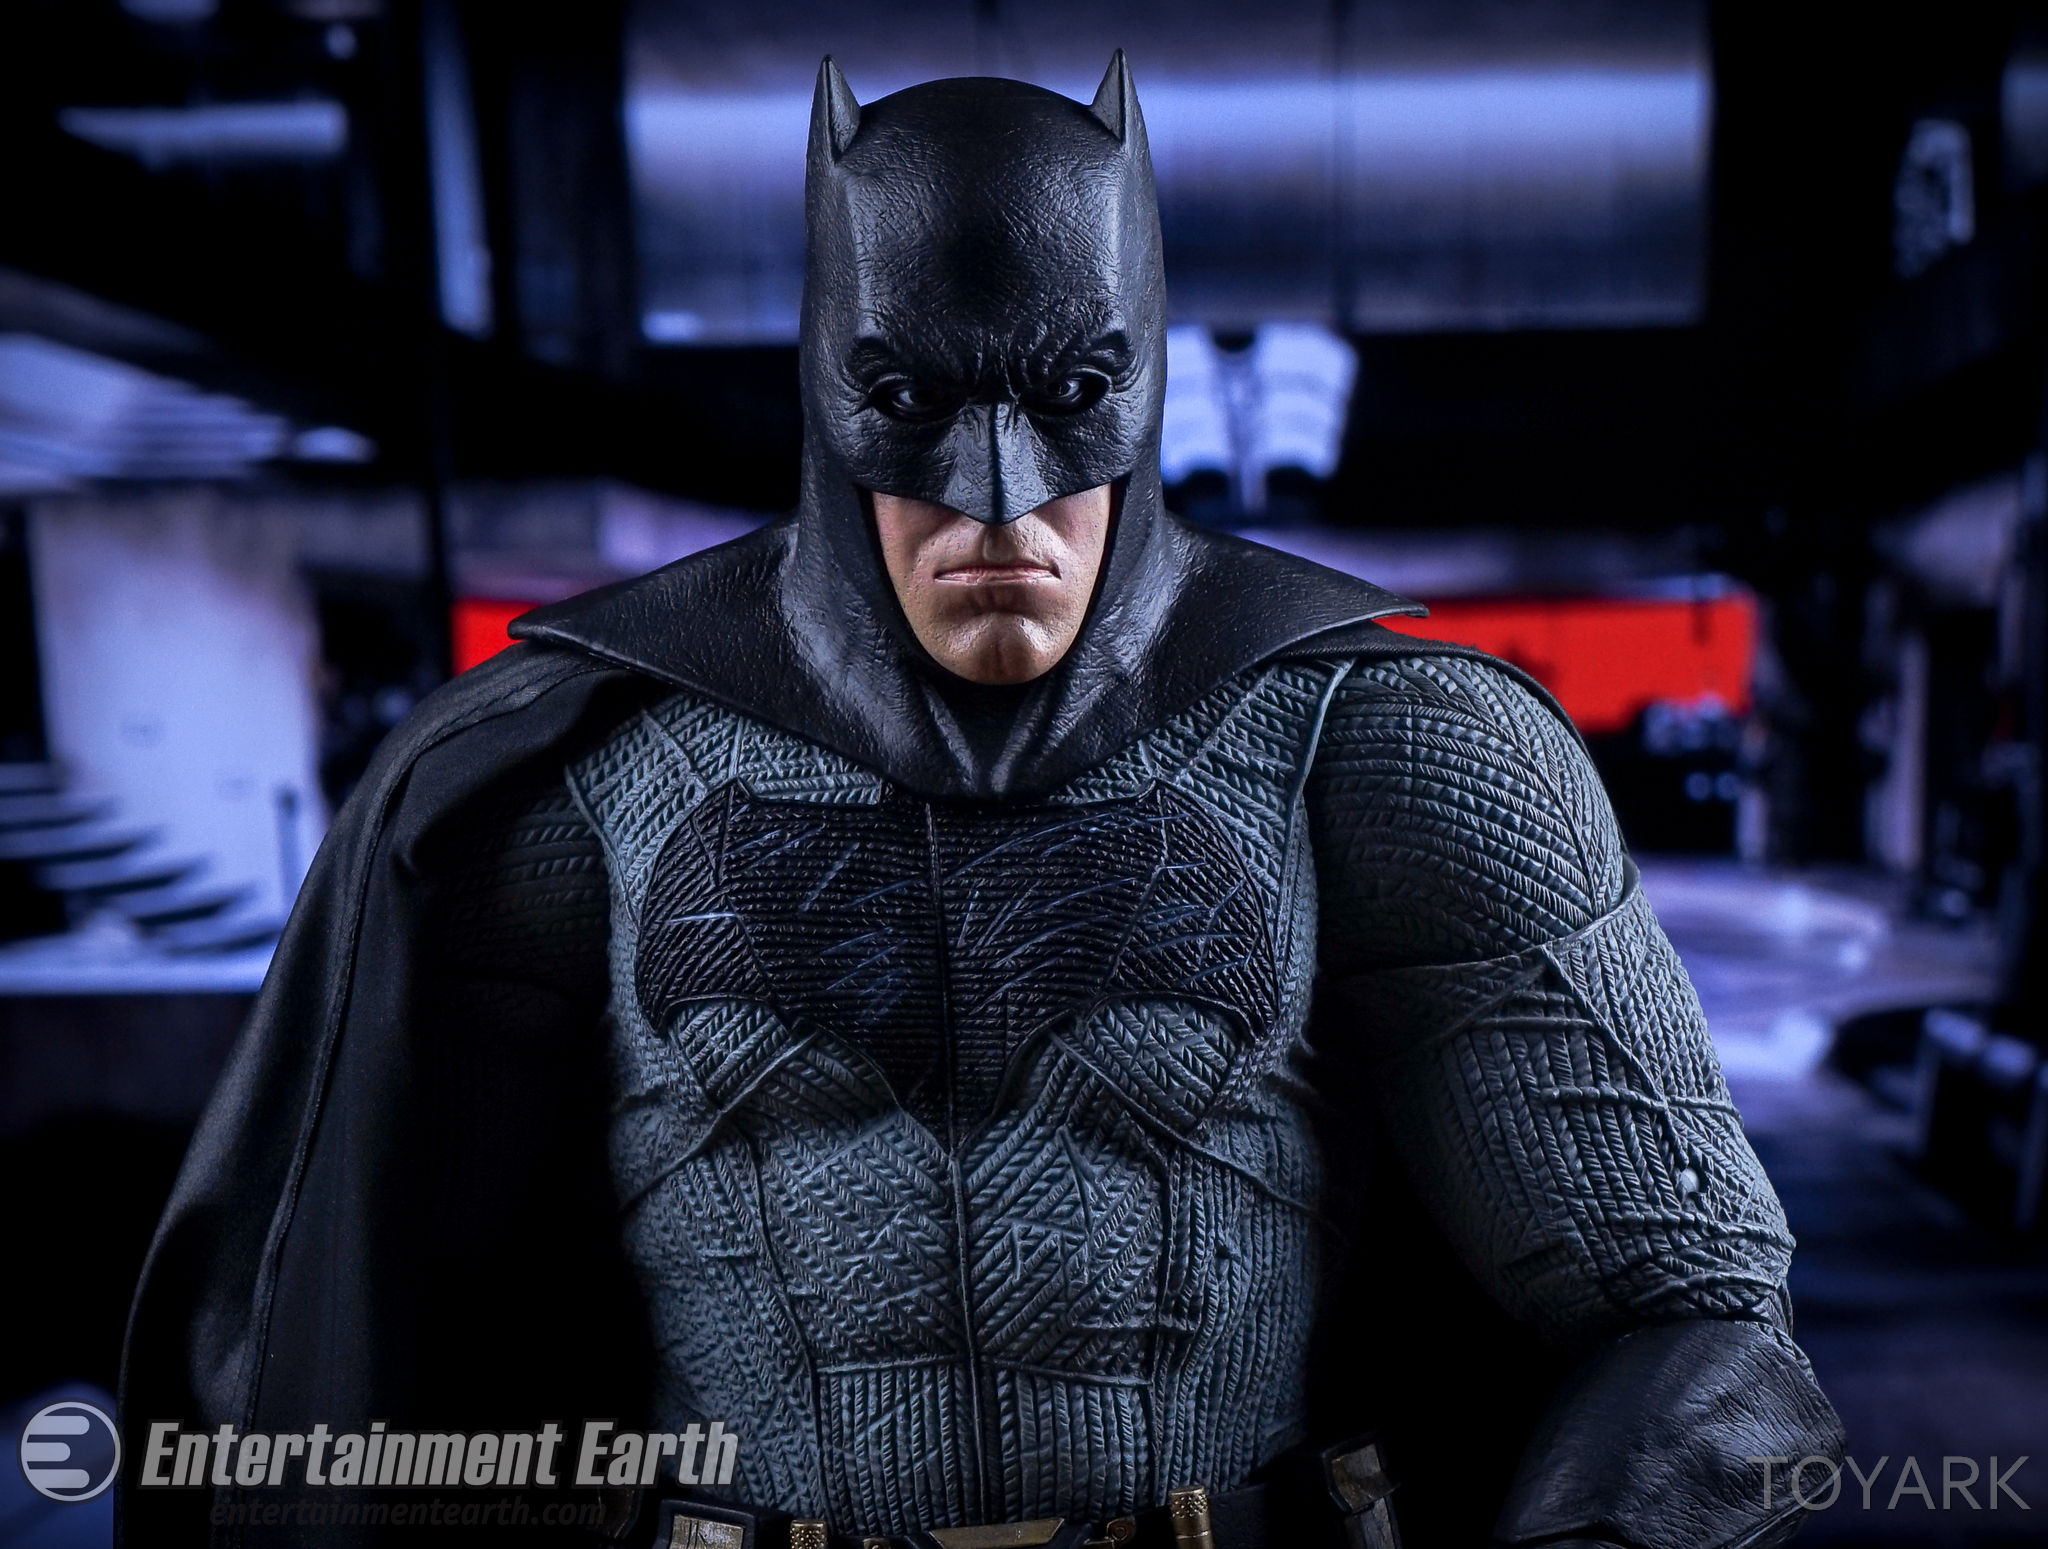 http://news.toyark.com/wp-content/uploads/sites/4/2016/06/NECA-BvS-Quarter-Scale-Batman-046.jpg